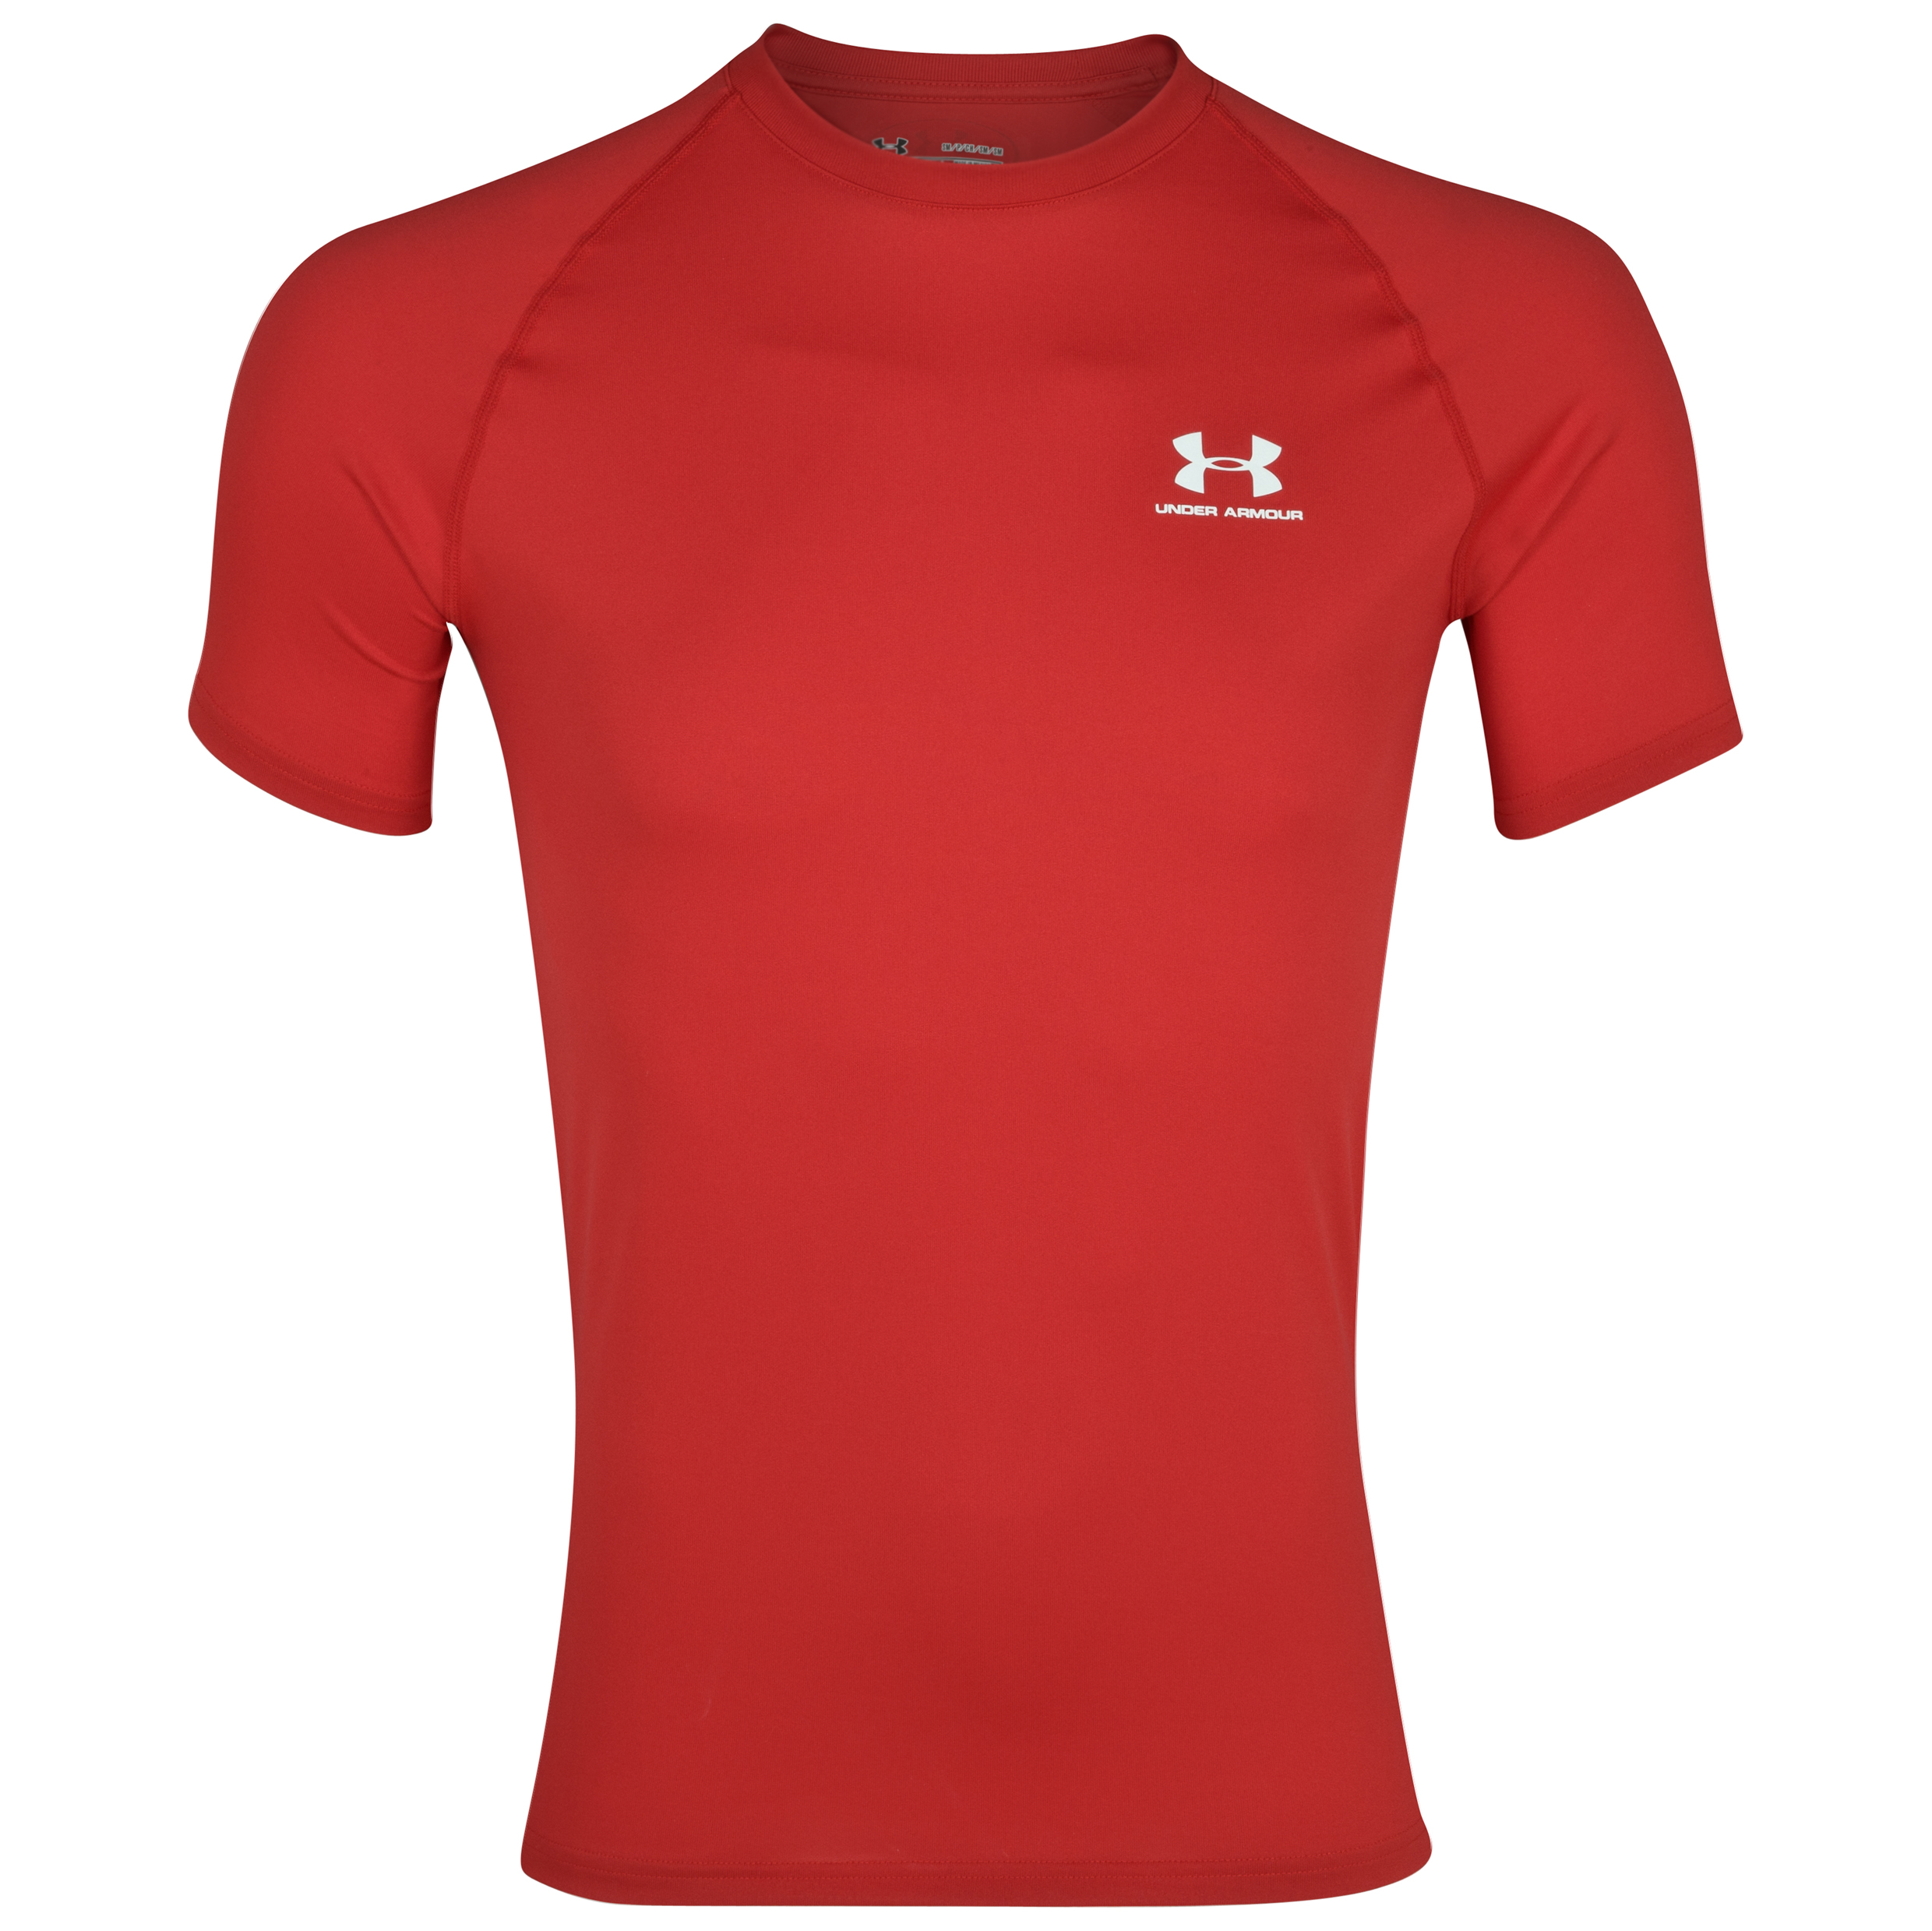 Under Armour Tech T-Shirt - Red/White